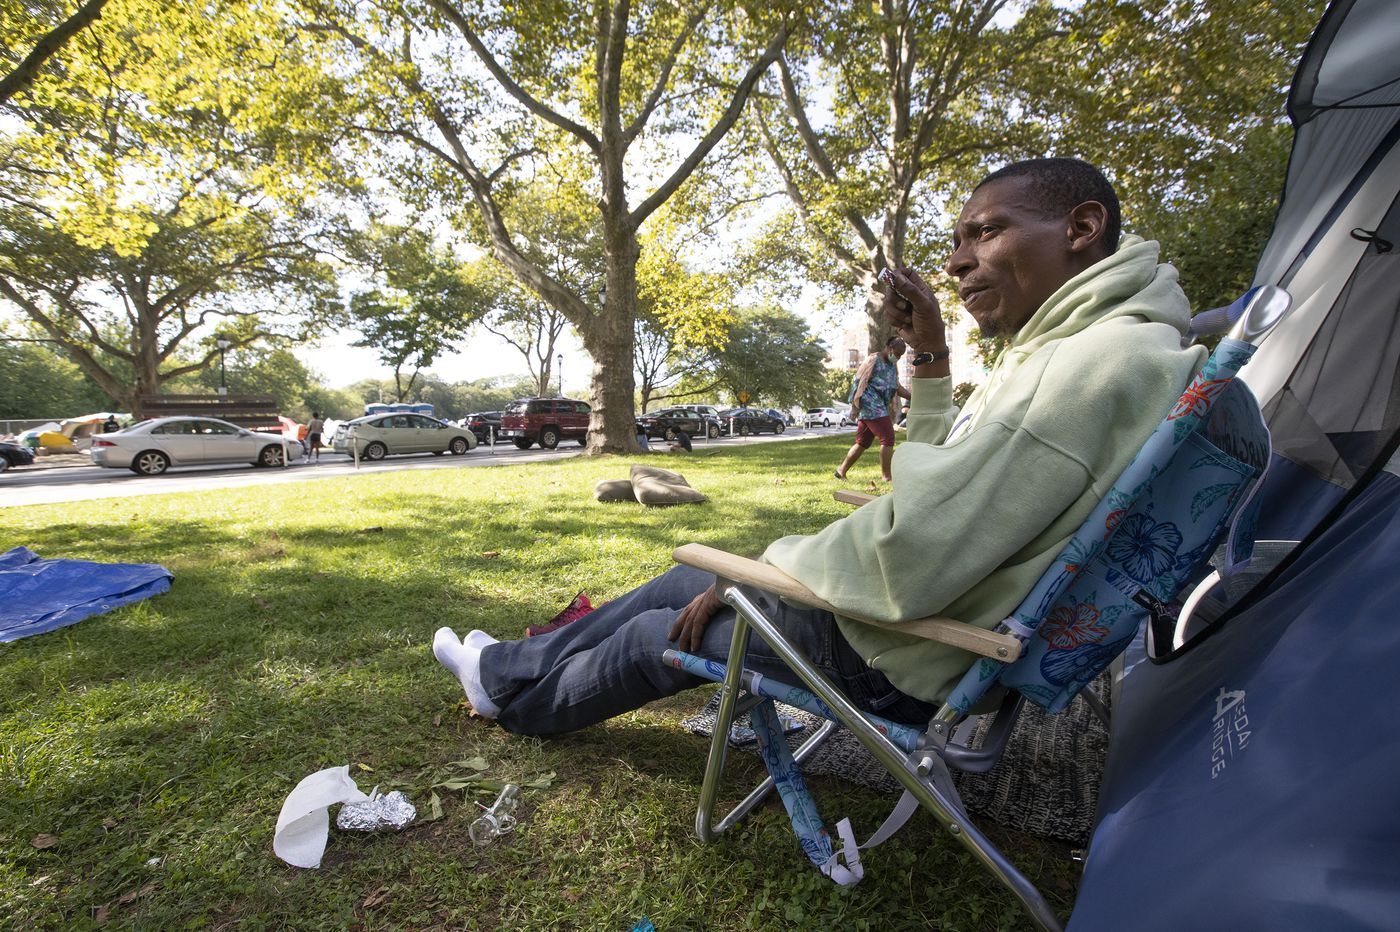 Judge to rule Tuesday on whether city can clear out Parkway homeless encampment